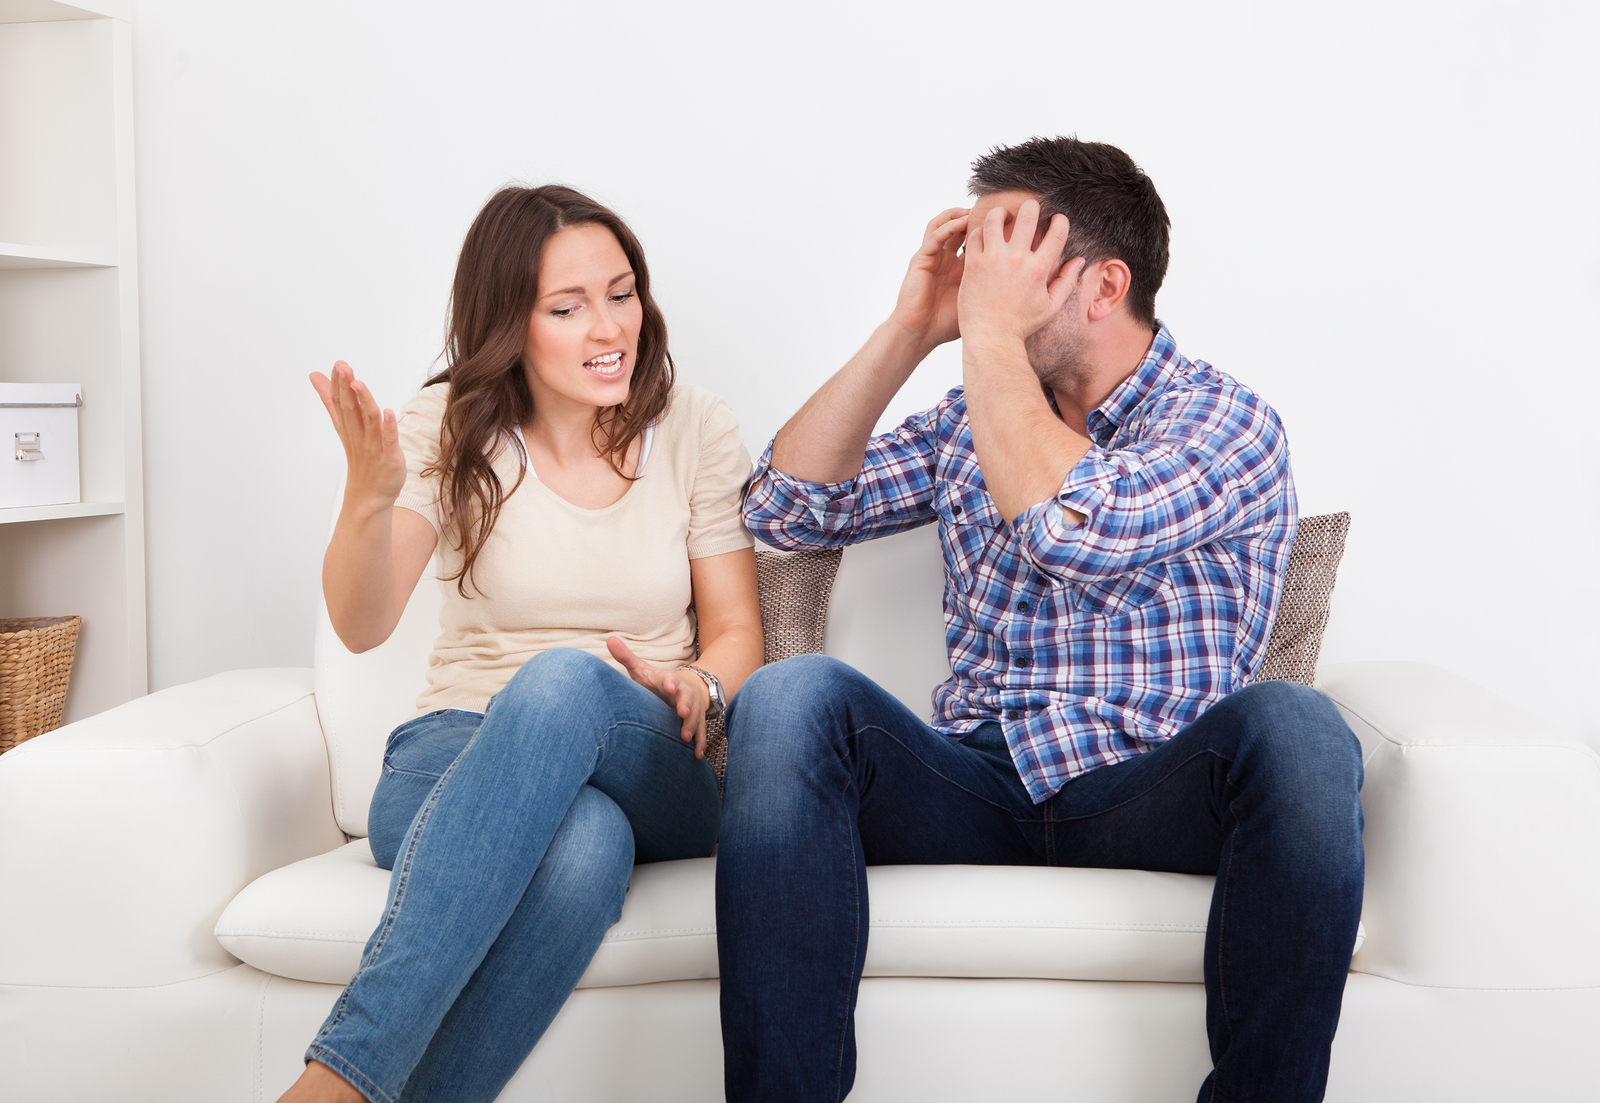 Portrait Of Frustrated Couple Sitting On Couch Quarreling With Each Other